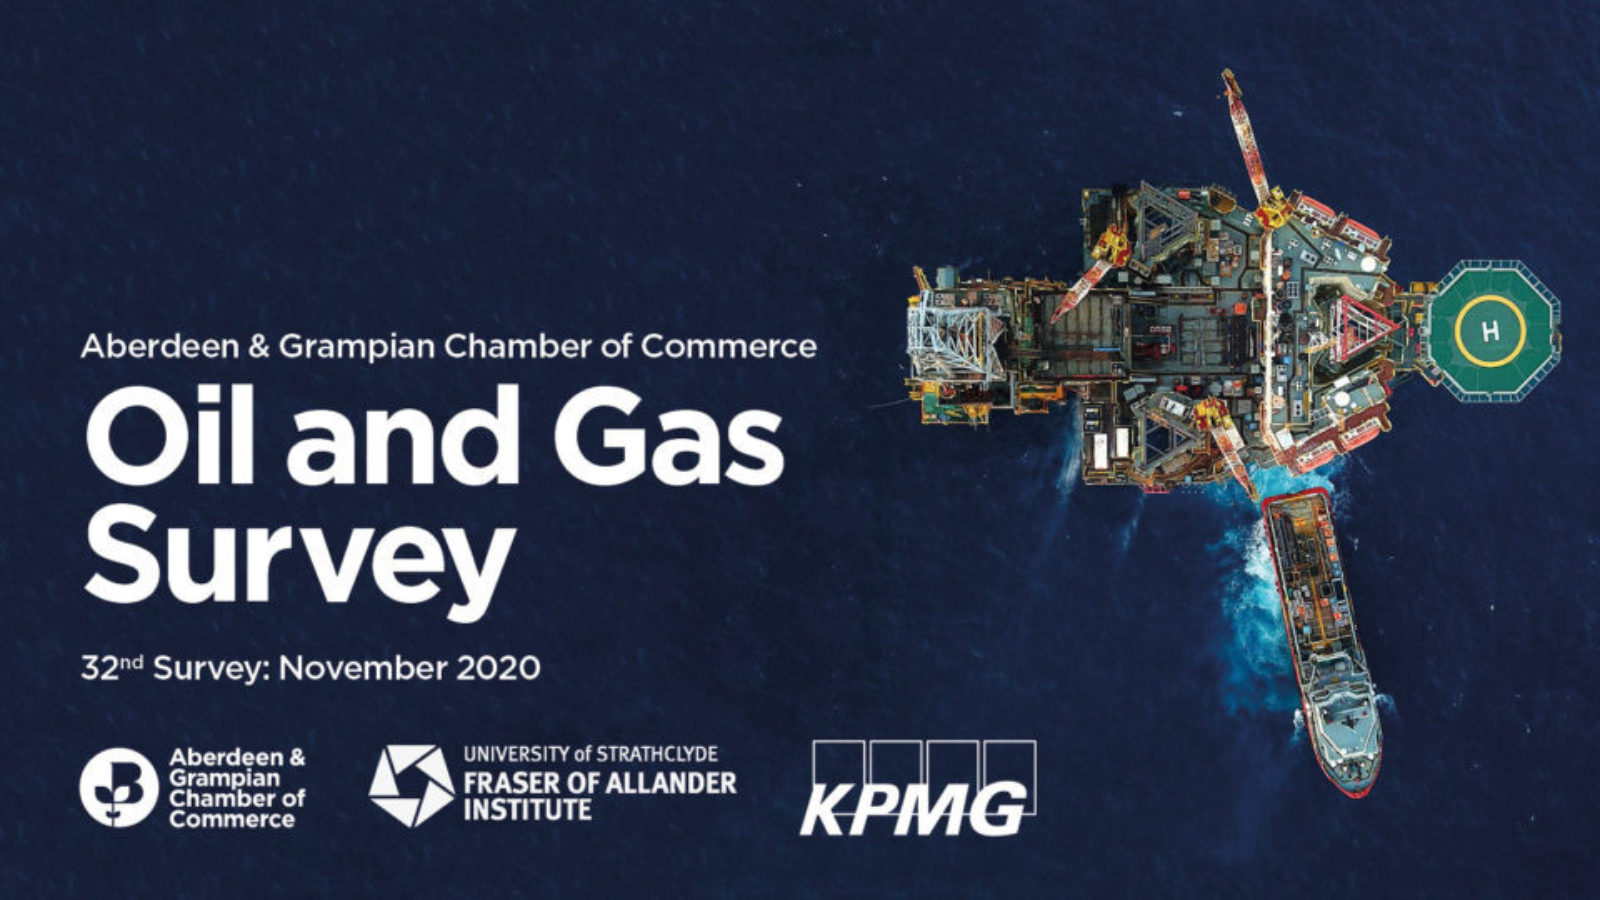 Economic turmoil across oil & gas sector with confidence about 2021 remaining low, according to new report